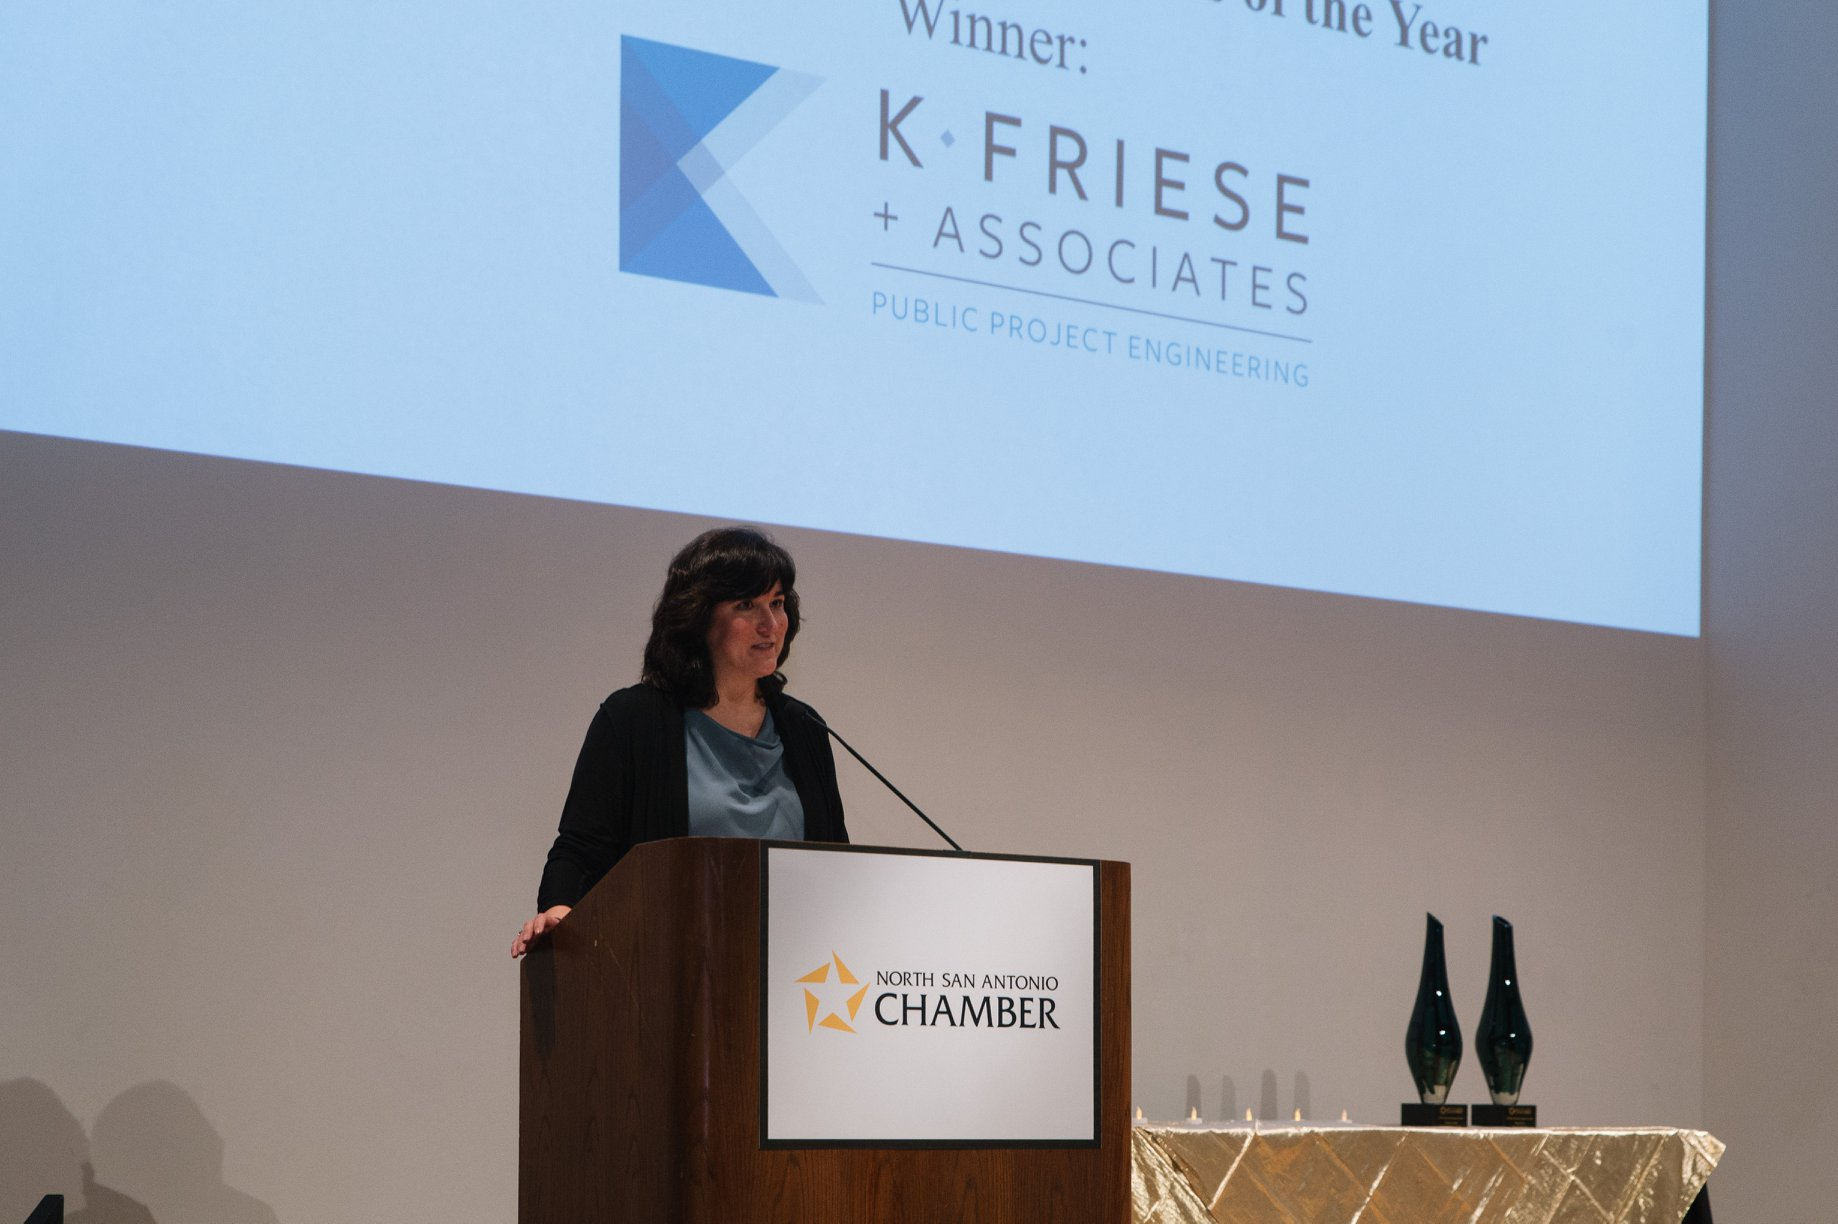 KFA selected for Women Owned Business of the Year Award by the North San Antonio Chamber of Commerce